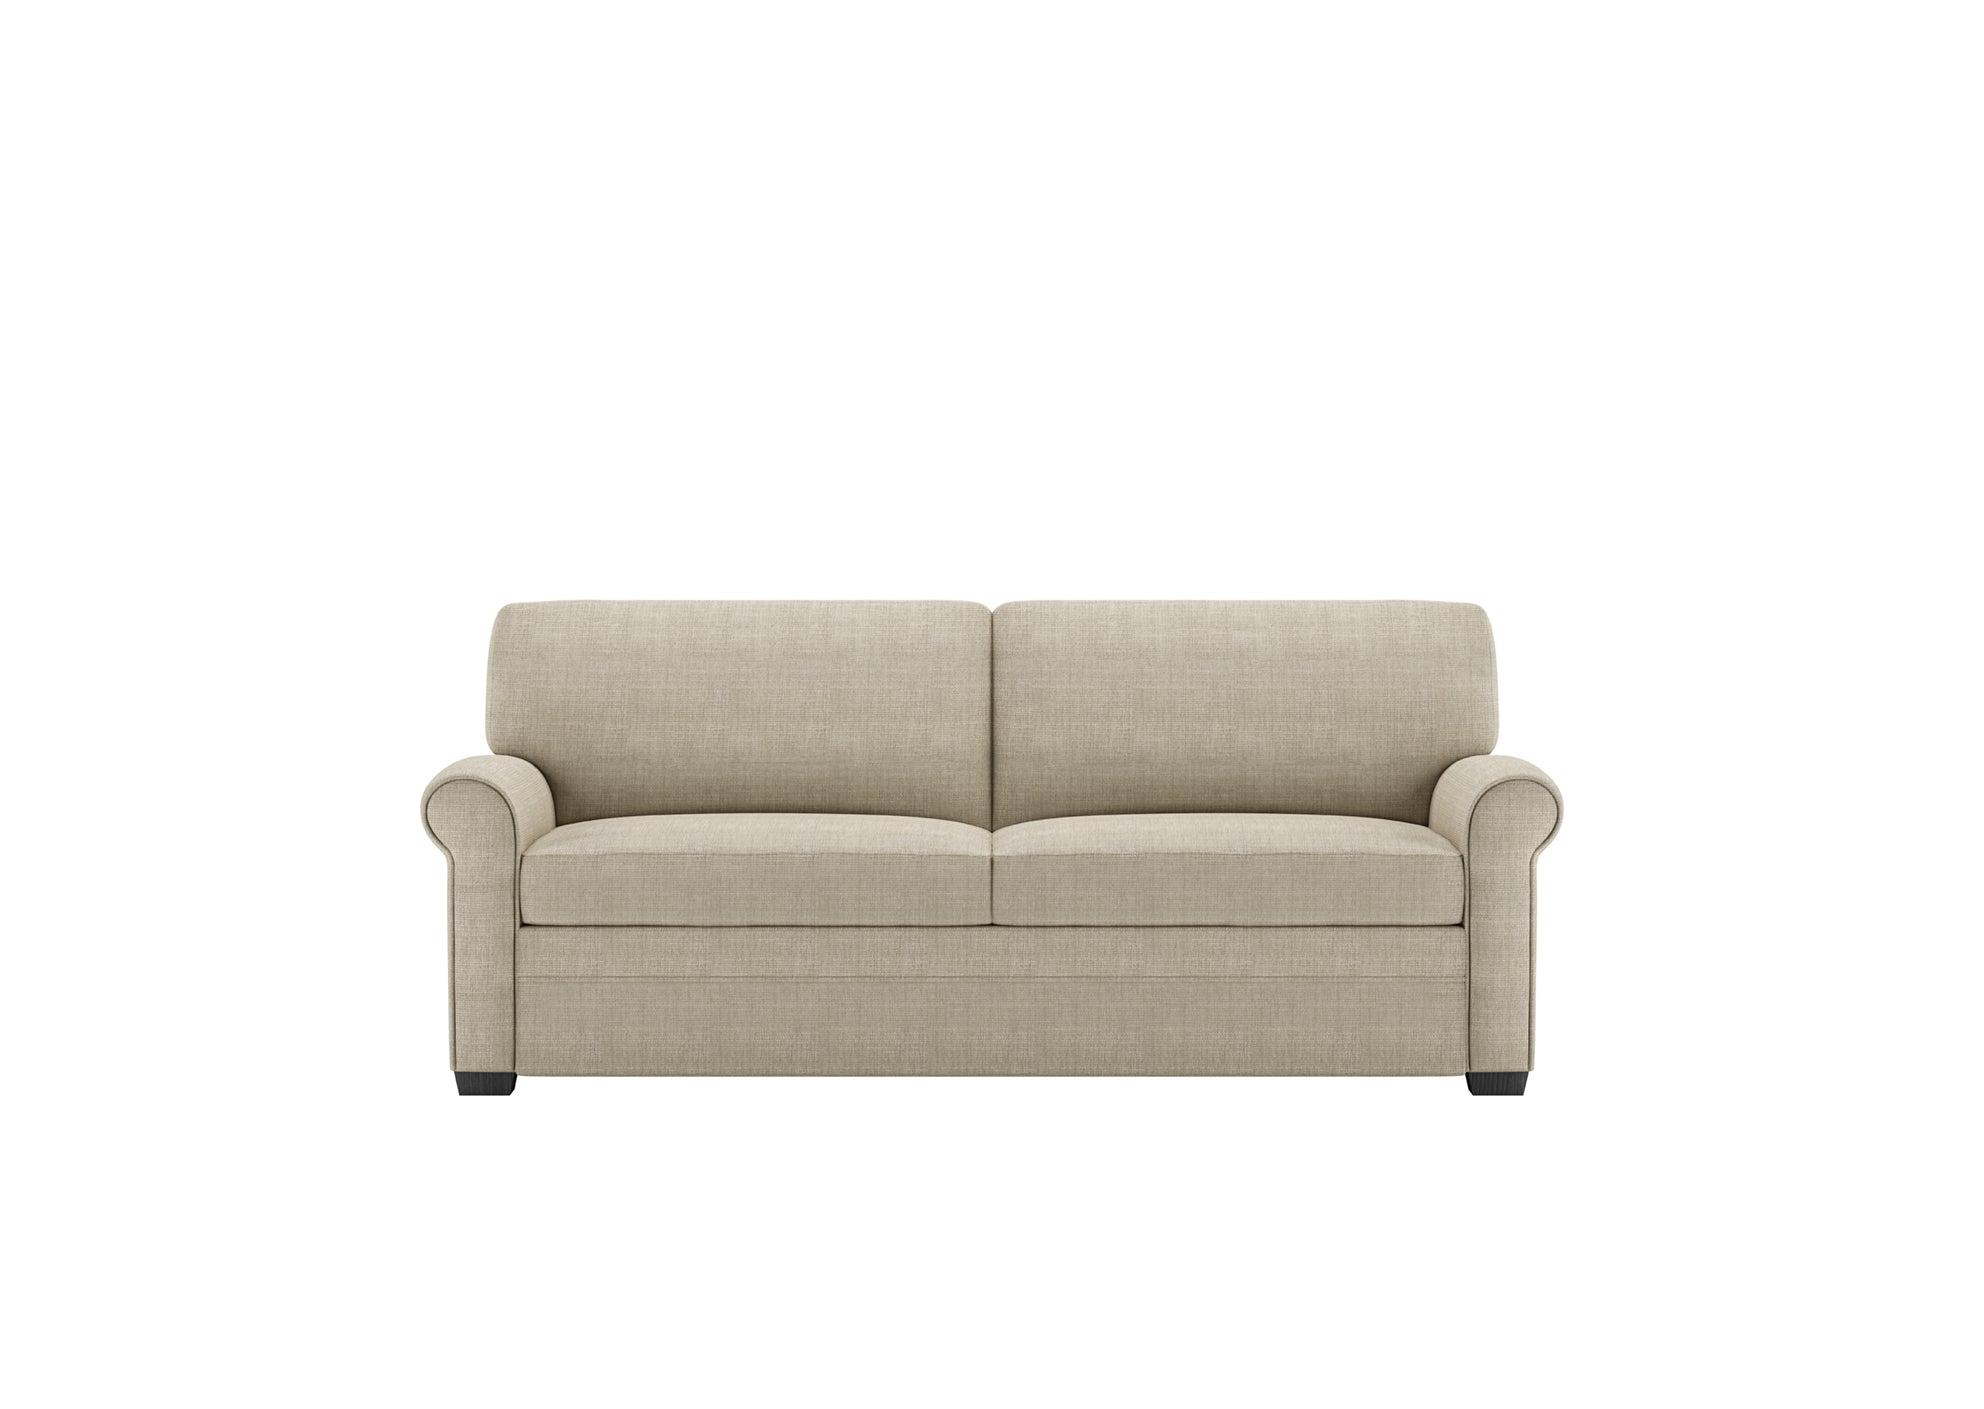 Magnificent Gaines Comfort Sleeper Sofa Creativecarmelina Interior Chair Design Creativecarmelinacom